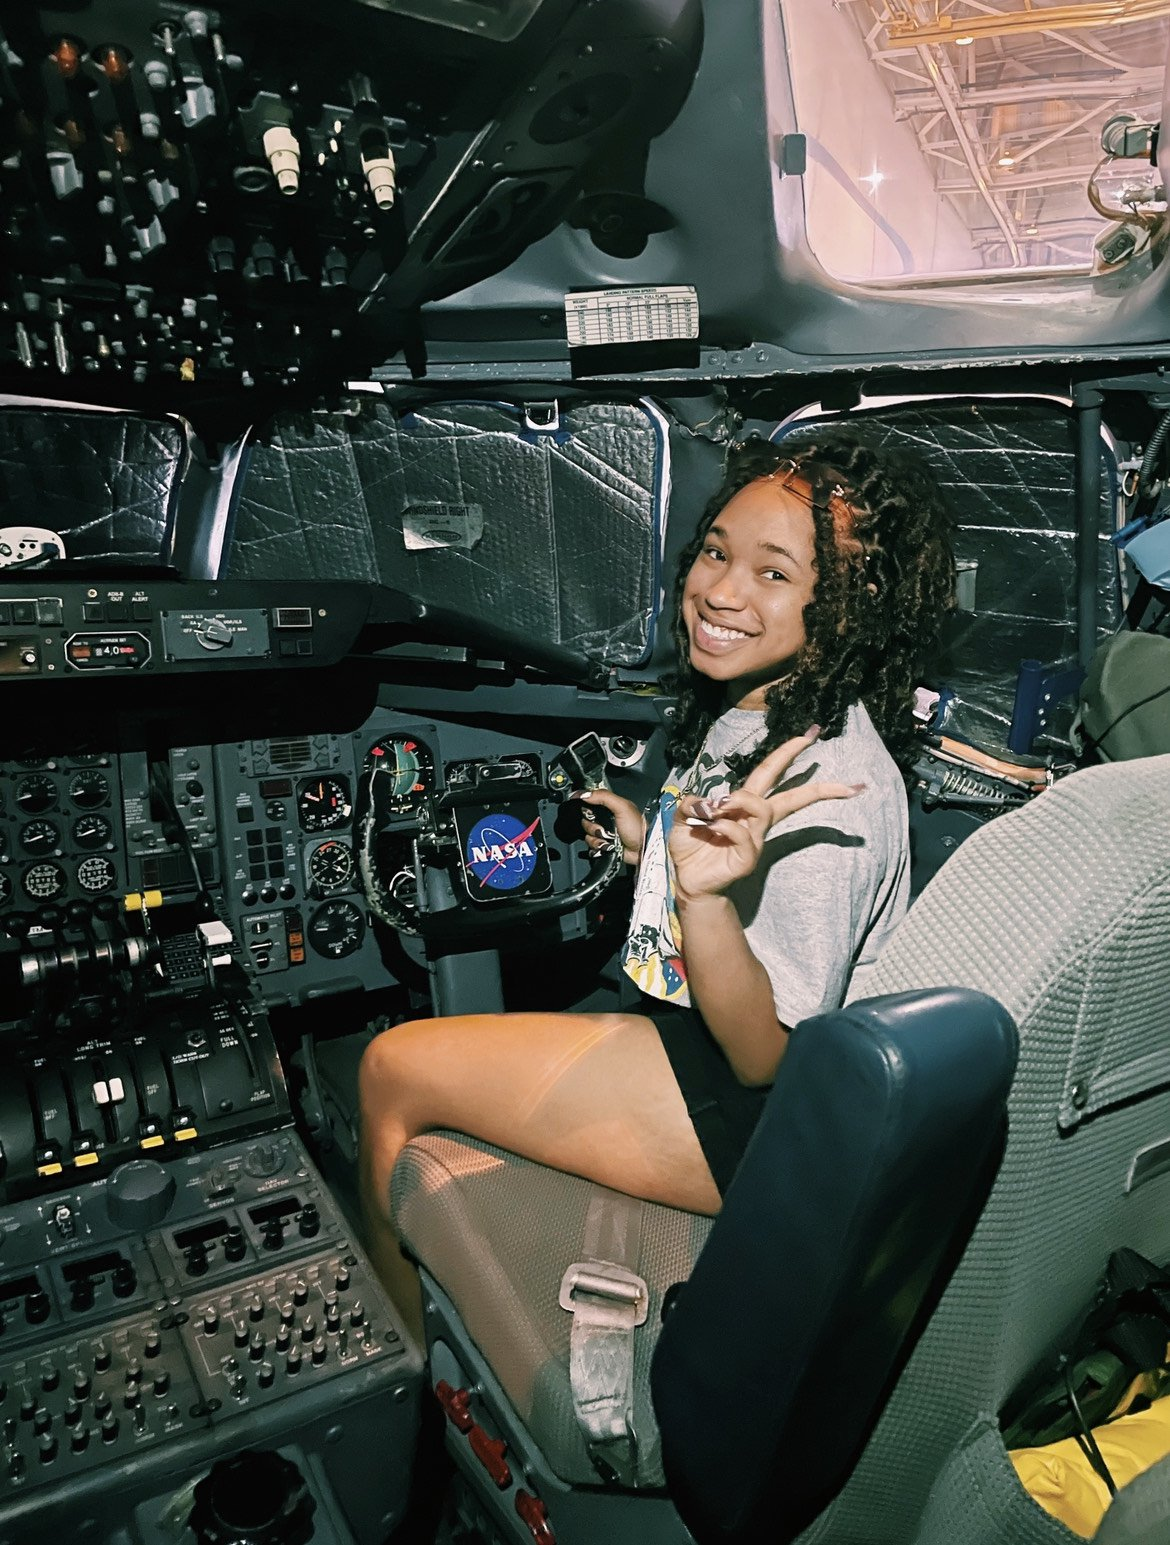 Kyndall Jones sits in the cockpit of a plane and looks back at the camera while making the peace sign with her left hand.